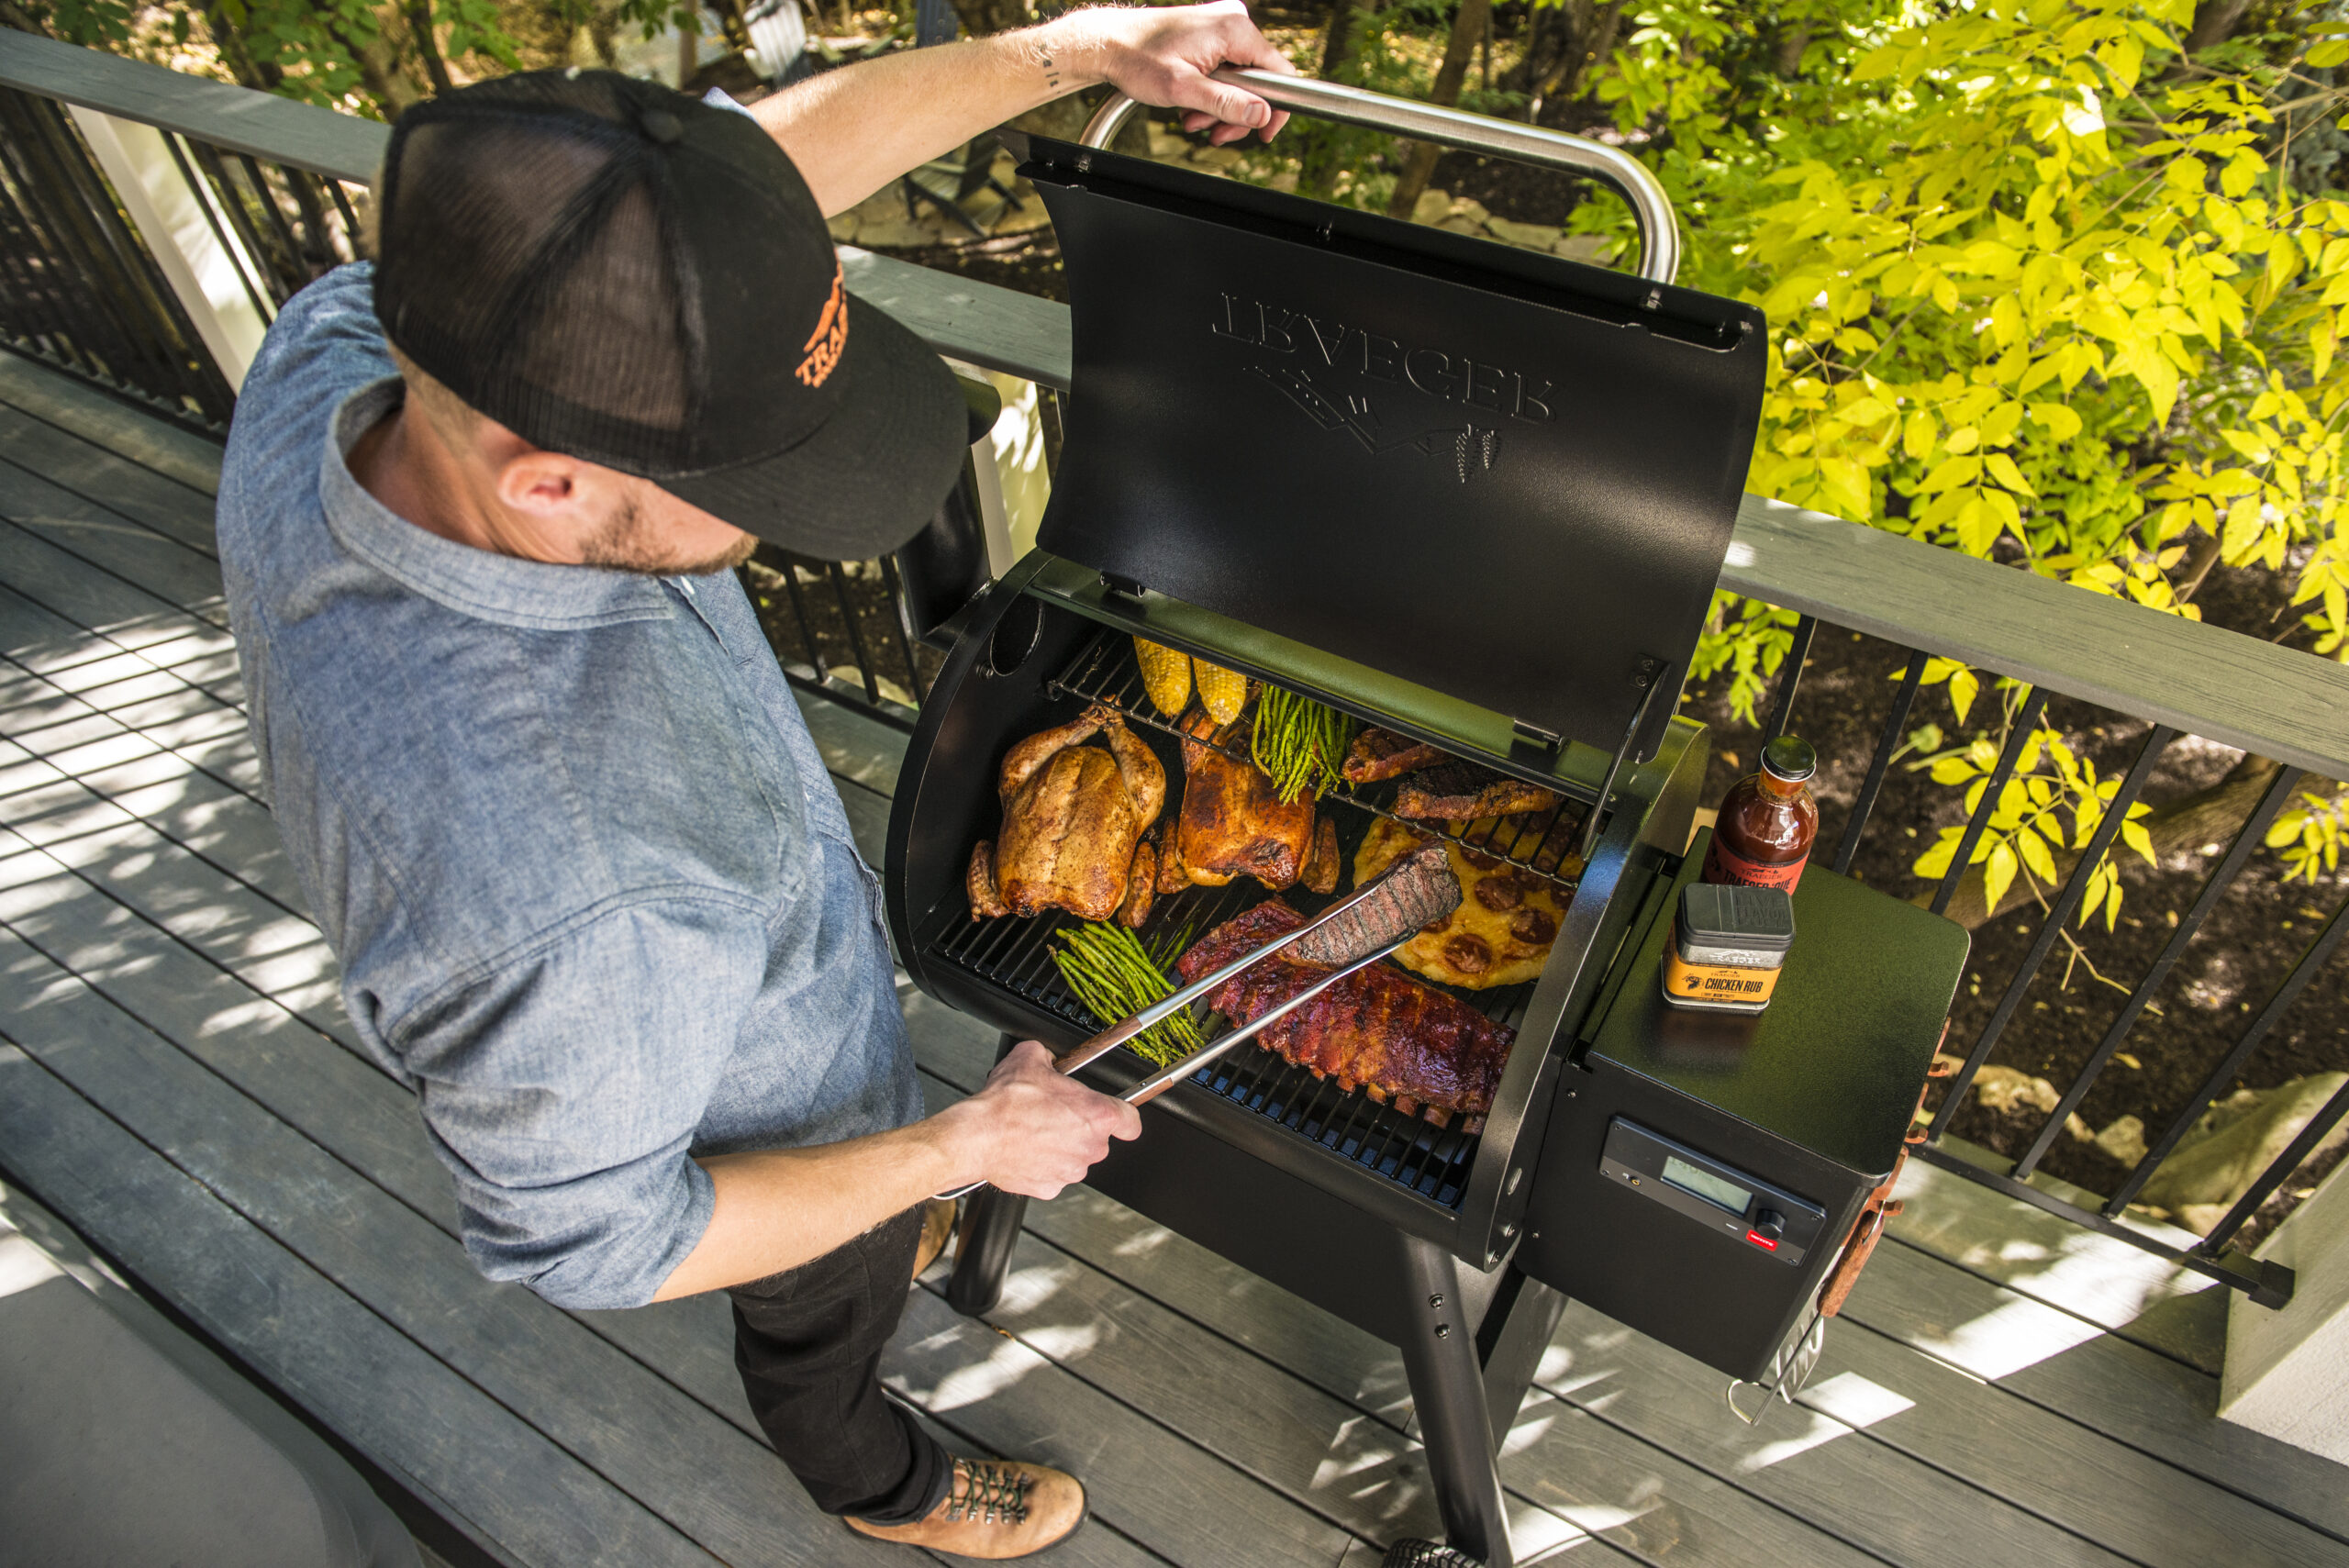 How to Be Crowned the Summer Grill King